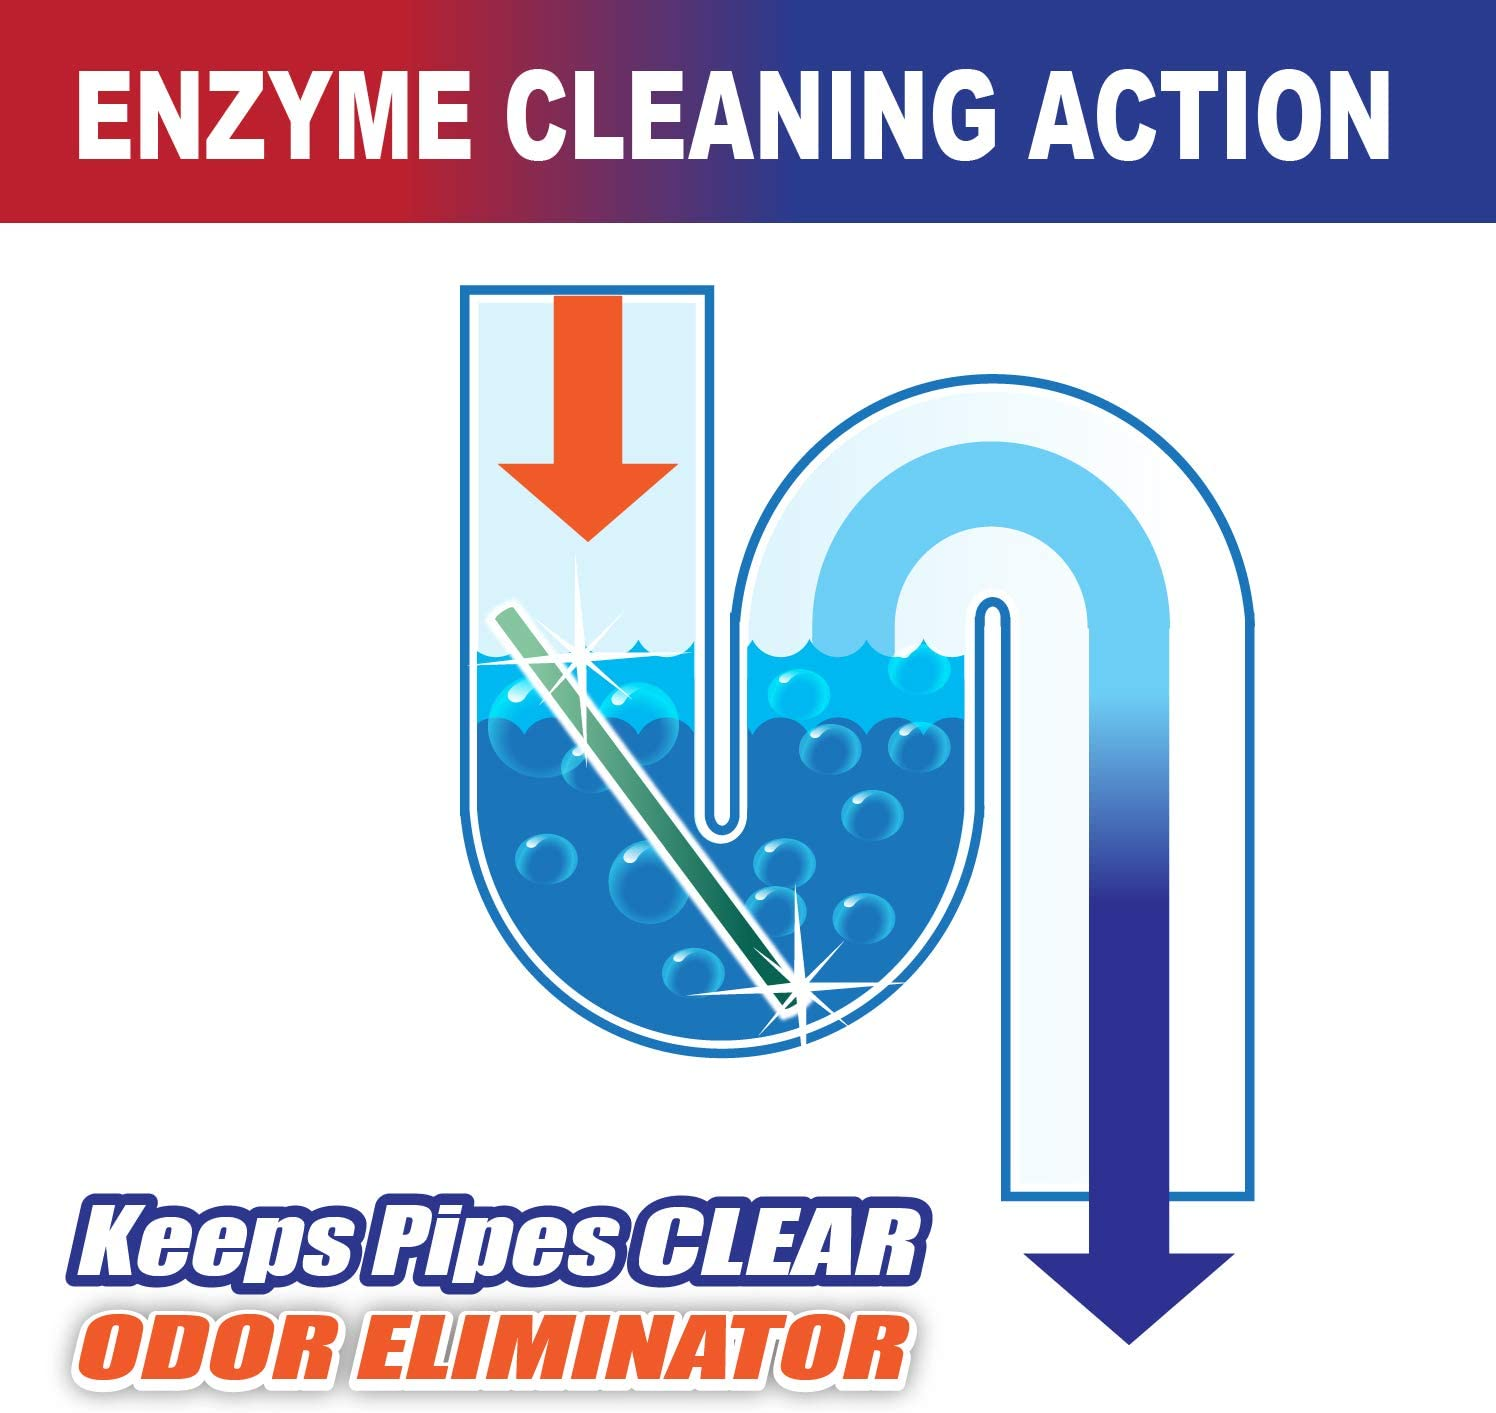 Orange Enzyme Formula to Eliminate Odors and Helps Prevent Clogged Drains Non-Toxic 48 Pack Septic Tank Safe SANI 360/° Sani Sticks Drain Cleaner and Deodorizer